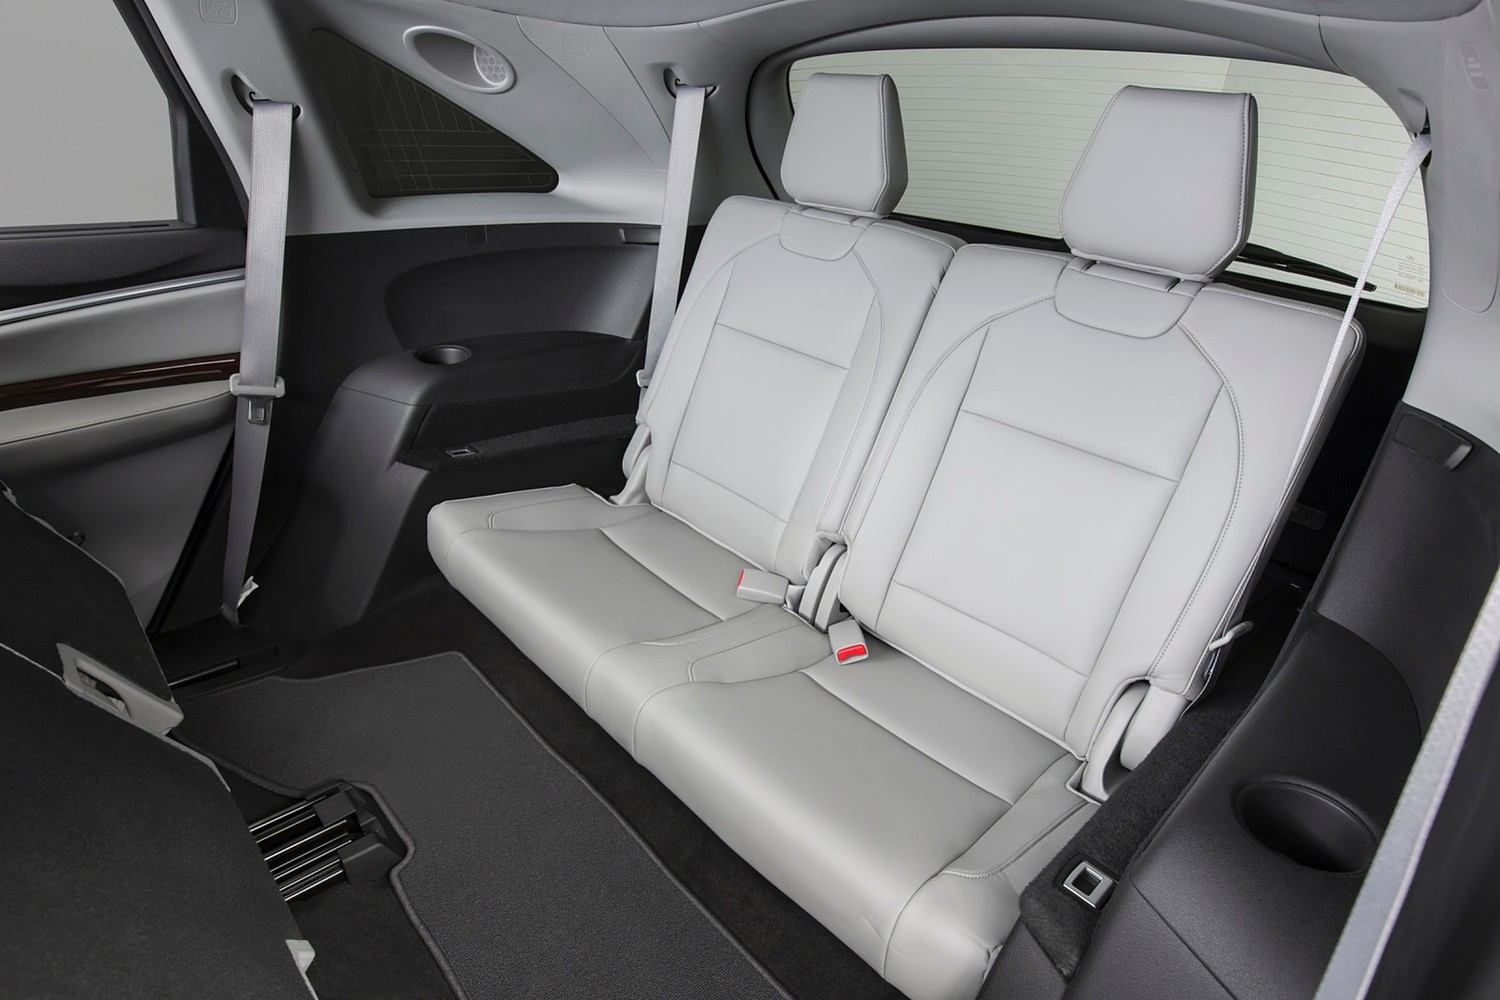 Acura MDX SH-AWD w/Technology and Entertainment Packages 4dr SUV Rear Interior (2014 model year shown)